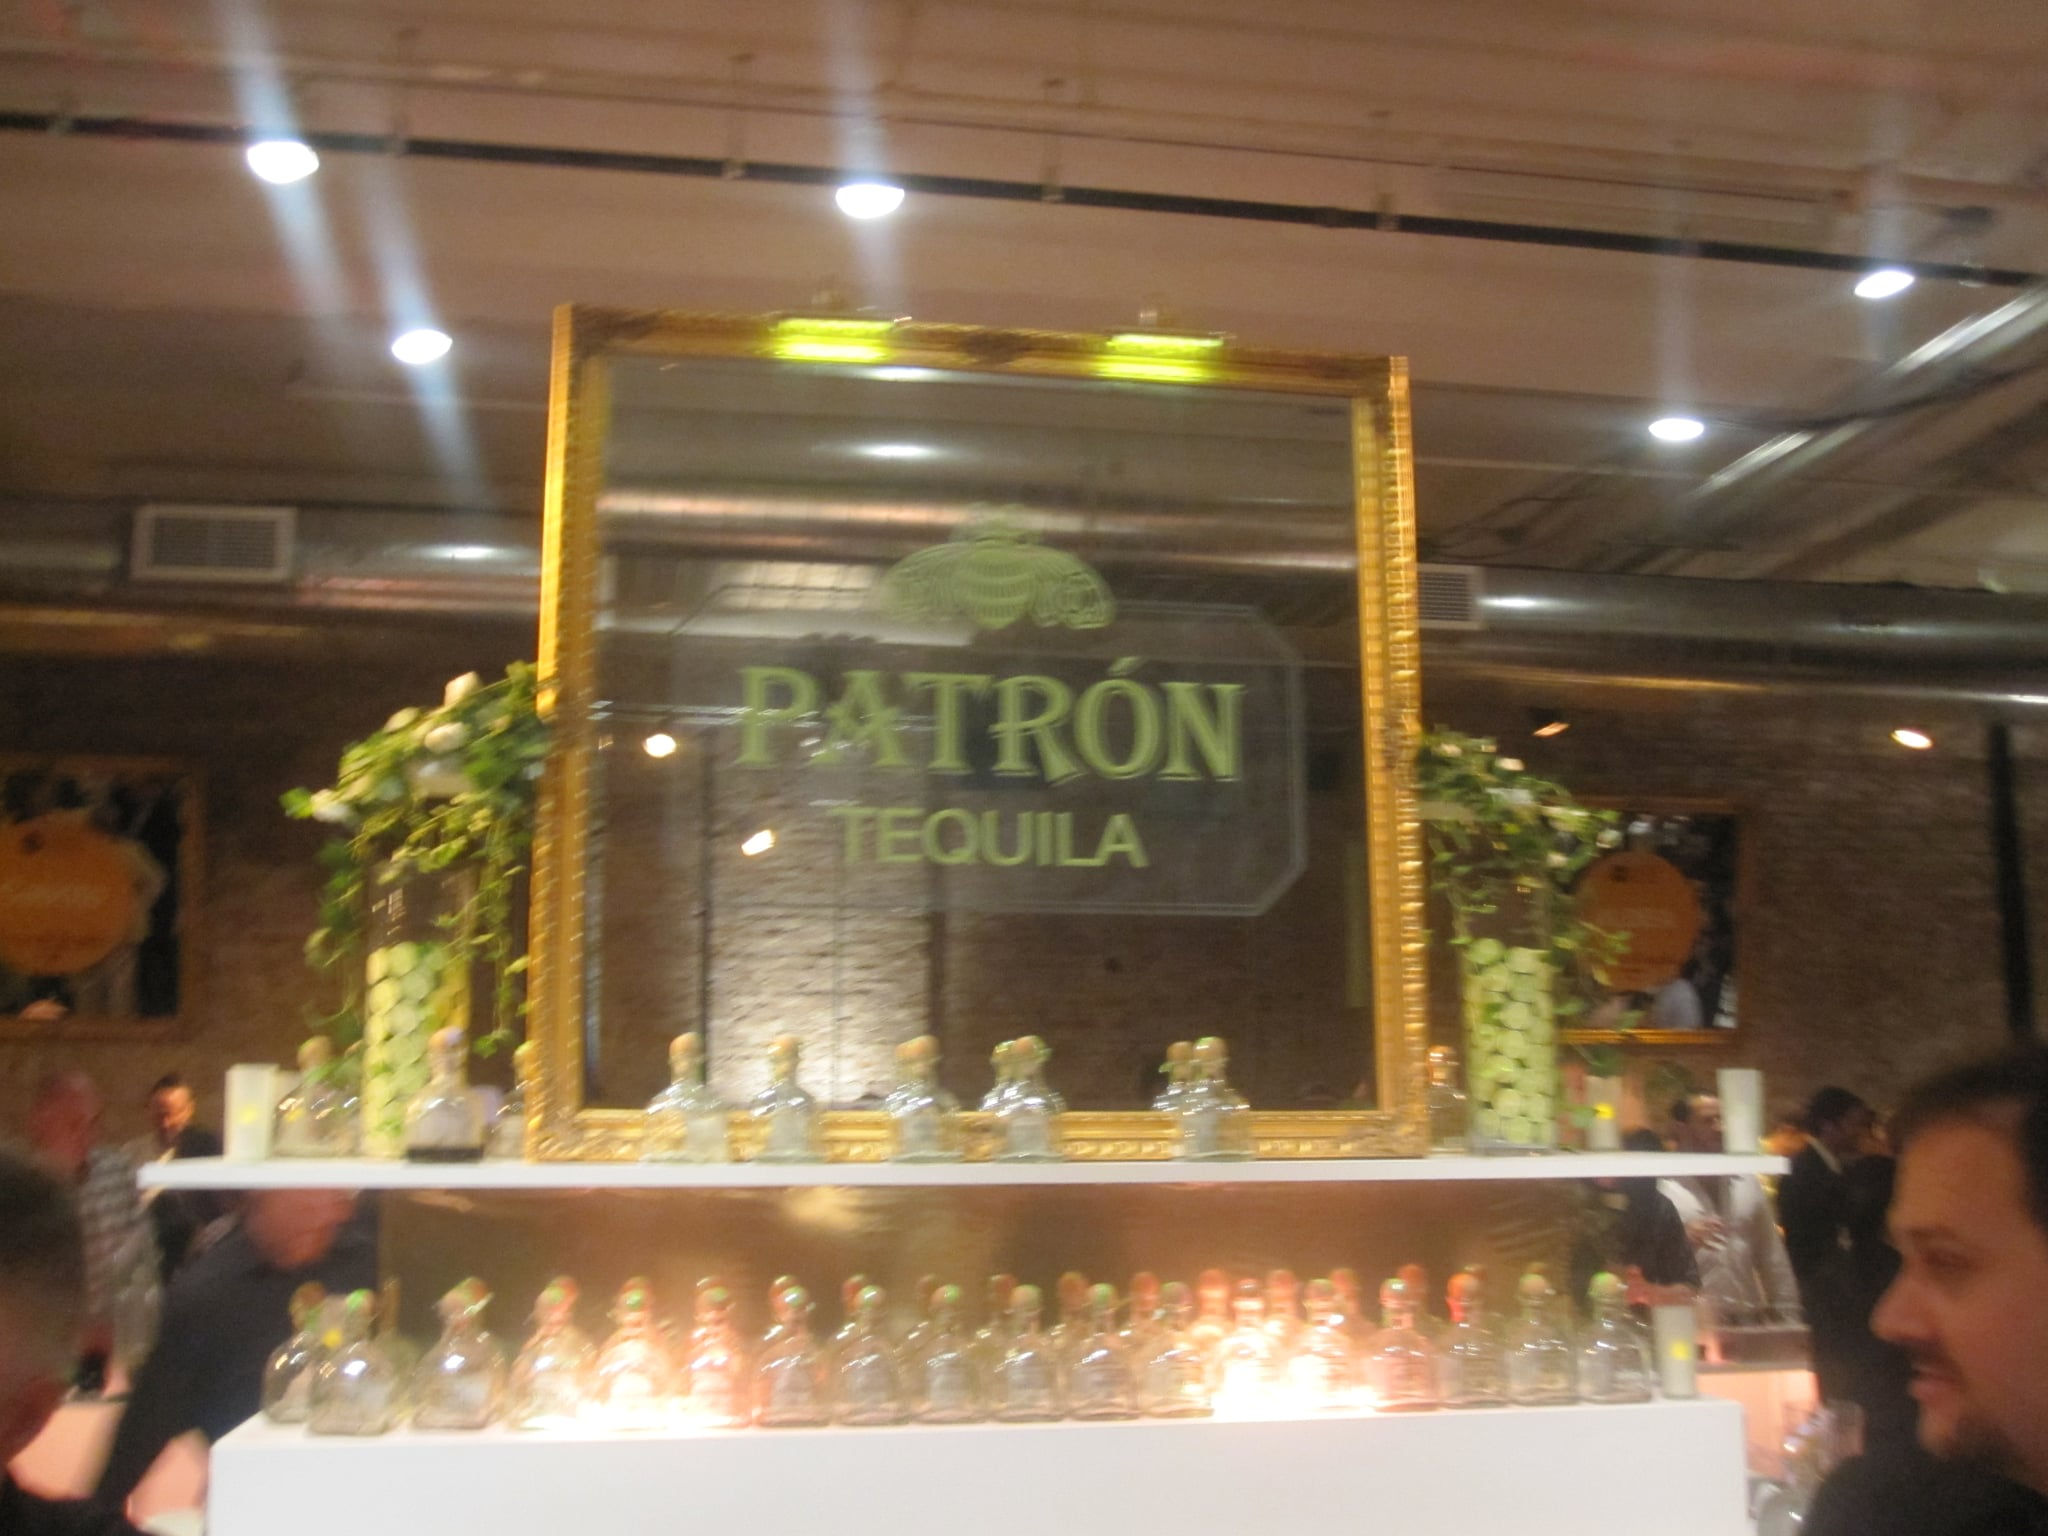 One of the bars. Patron tequila was a sponsor.